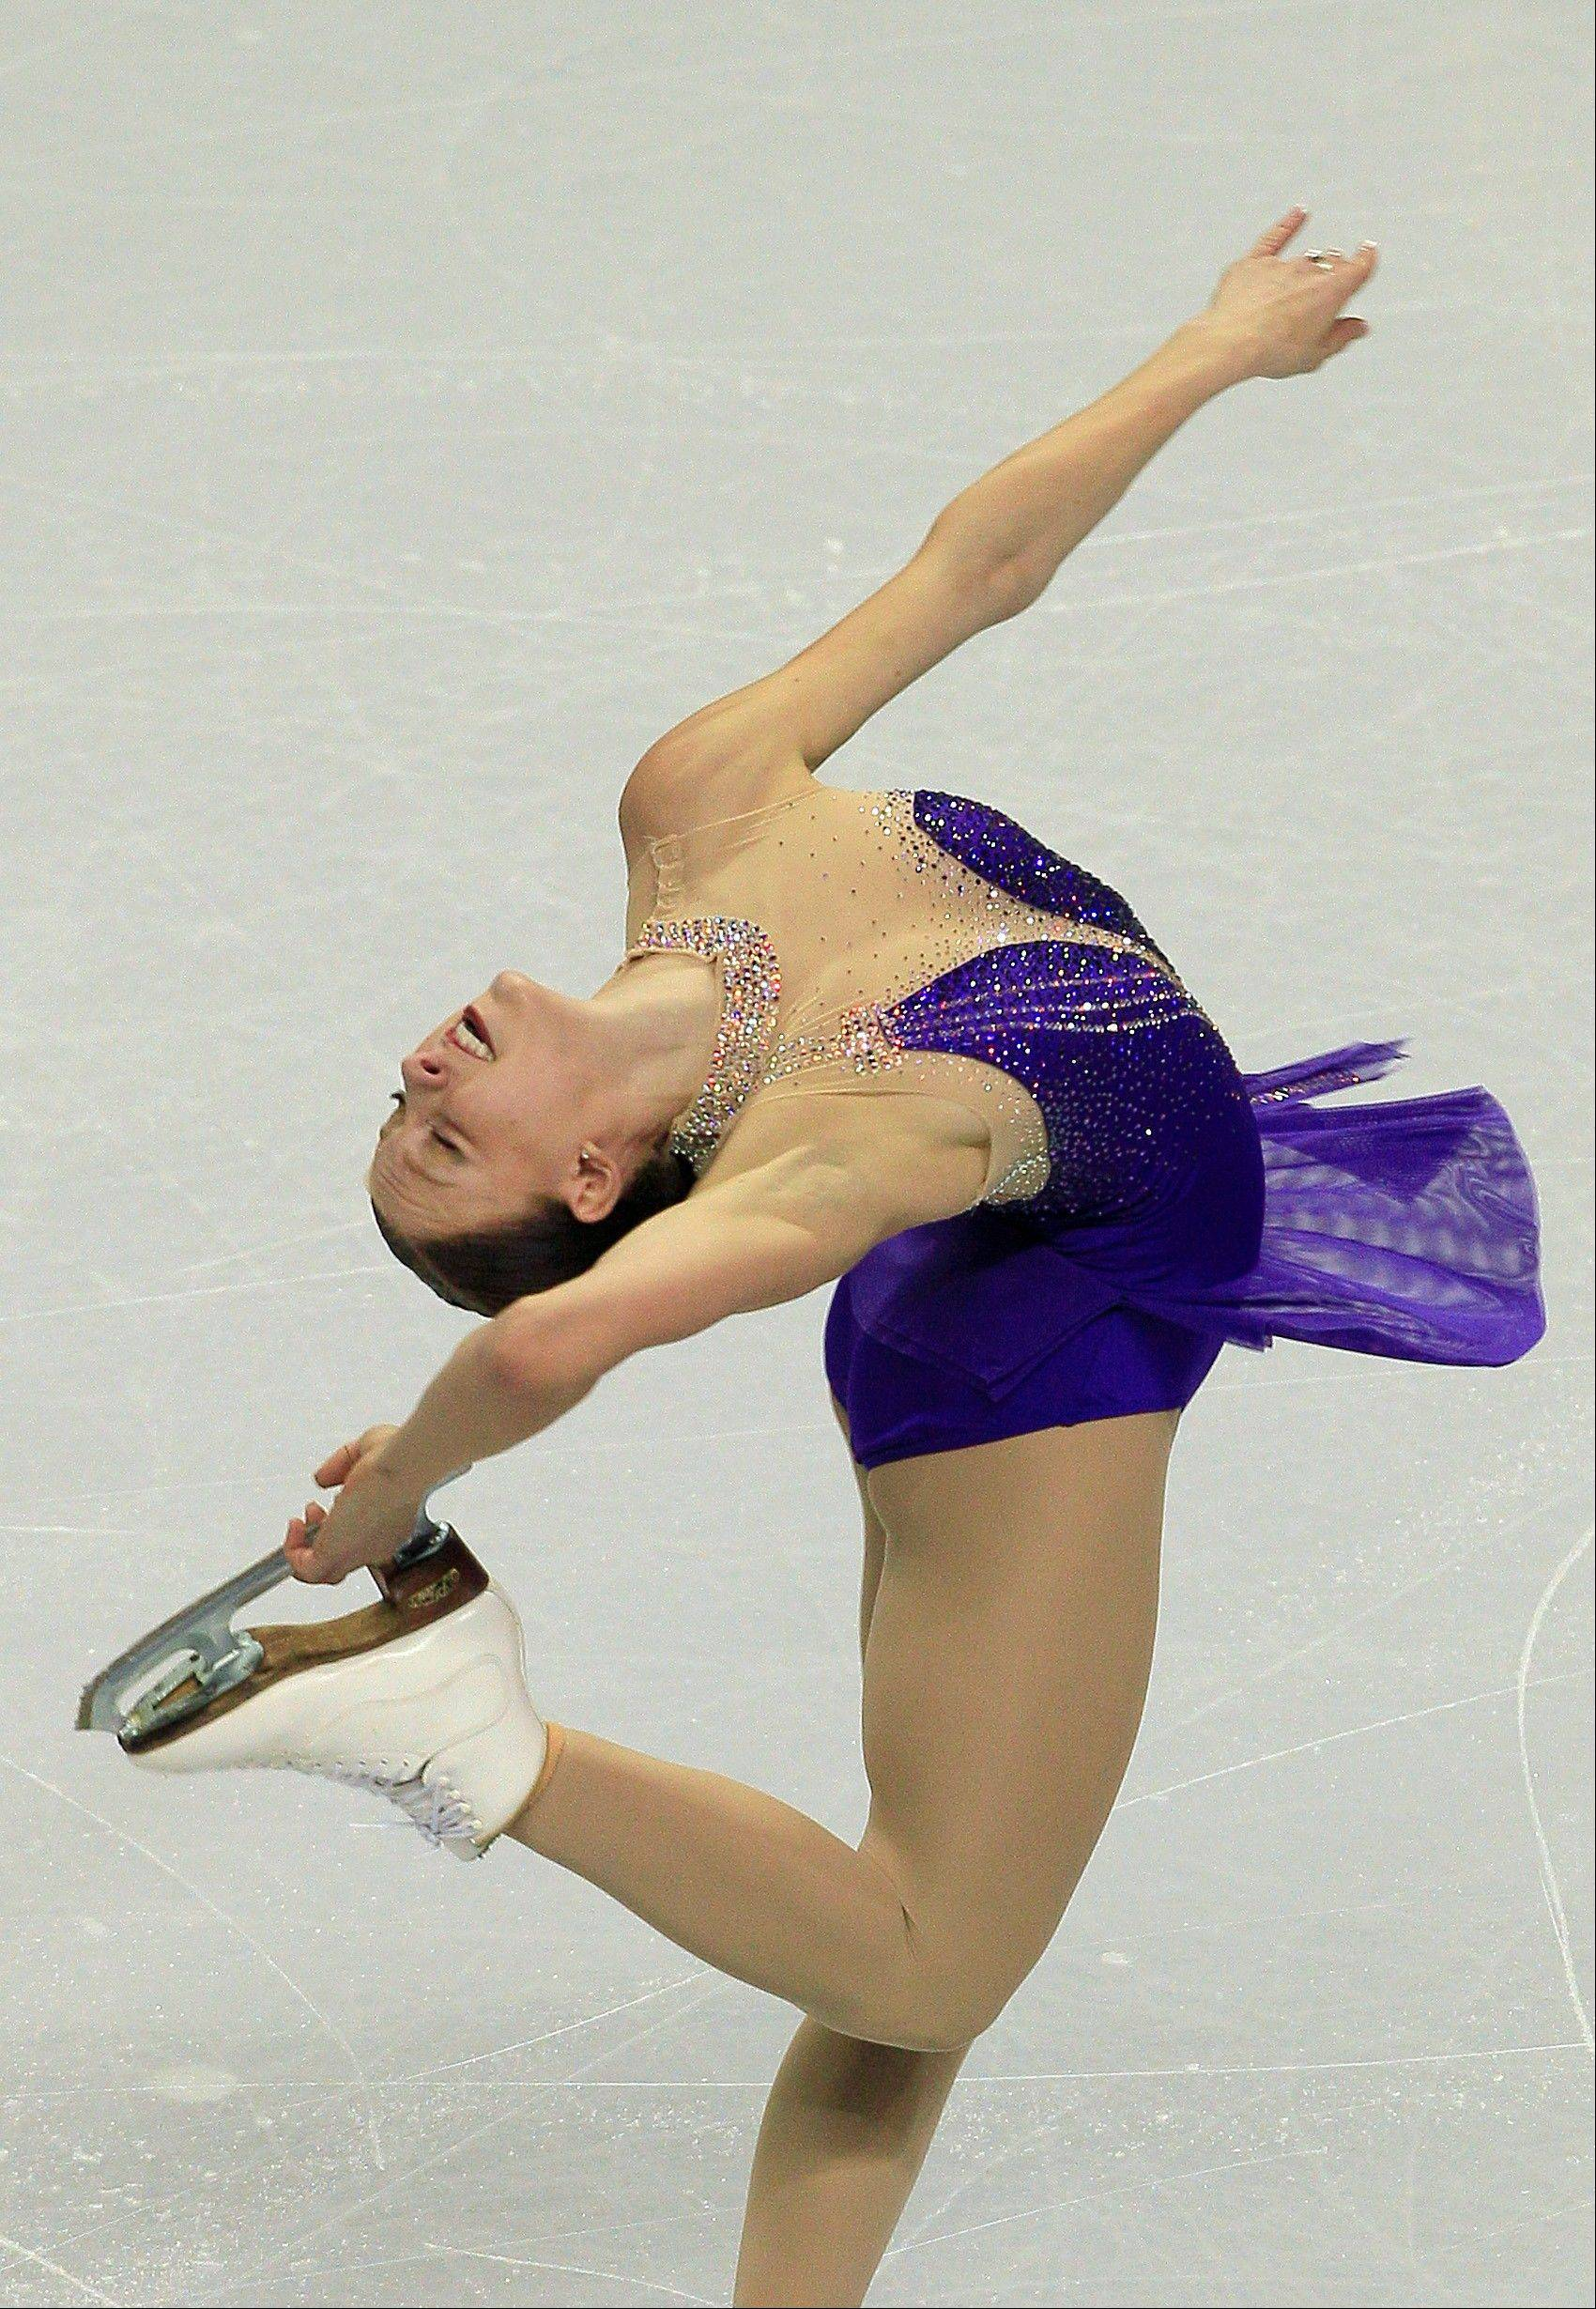 Skating to a blues medley, Agnes Zawadzki of Des Plaines captured the lead in the ladies short program competition Thursday at the U.S. Figure Skating Championships in San Jose, Calif.